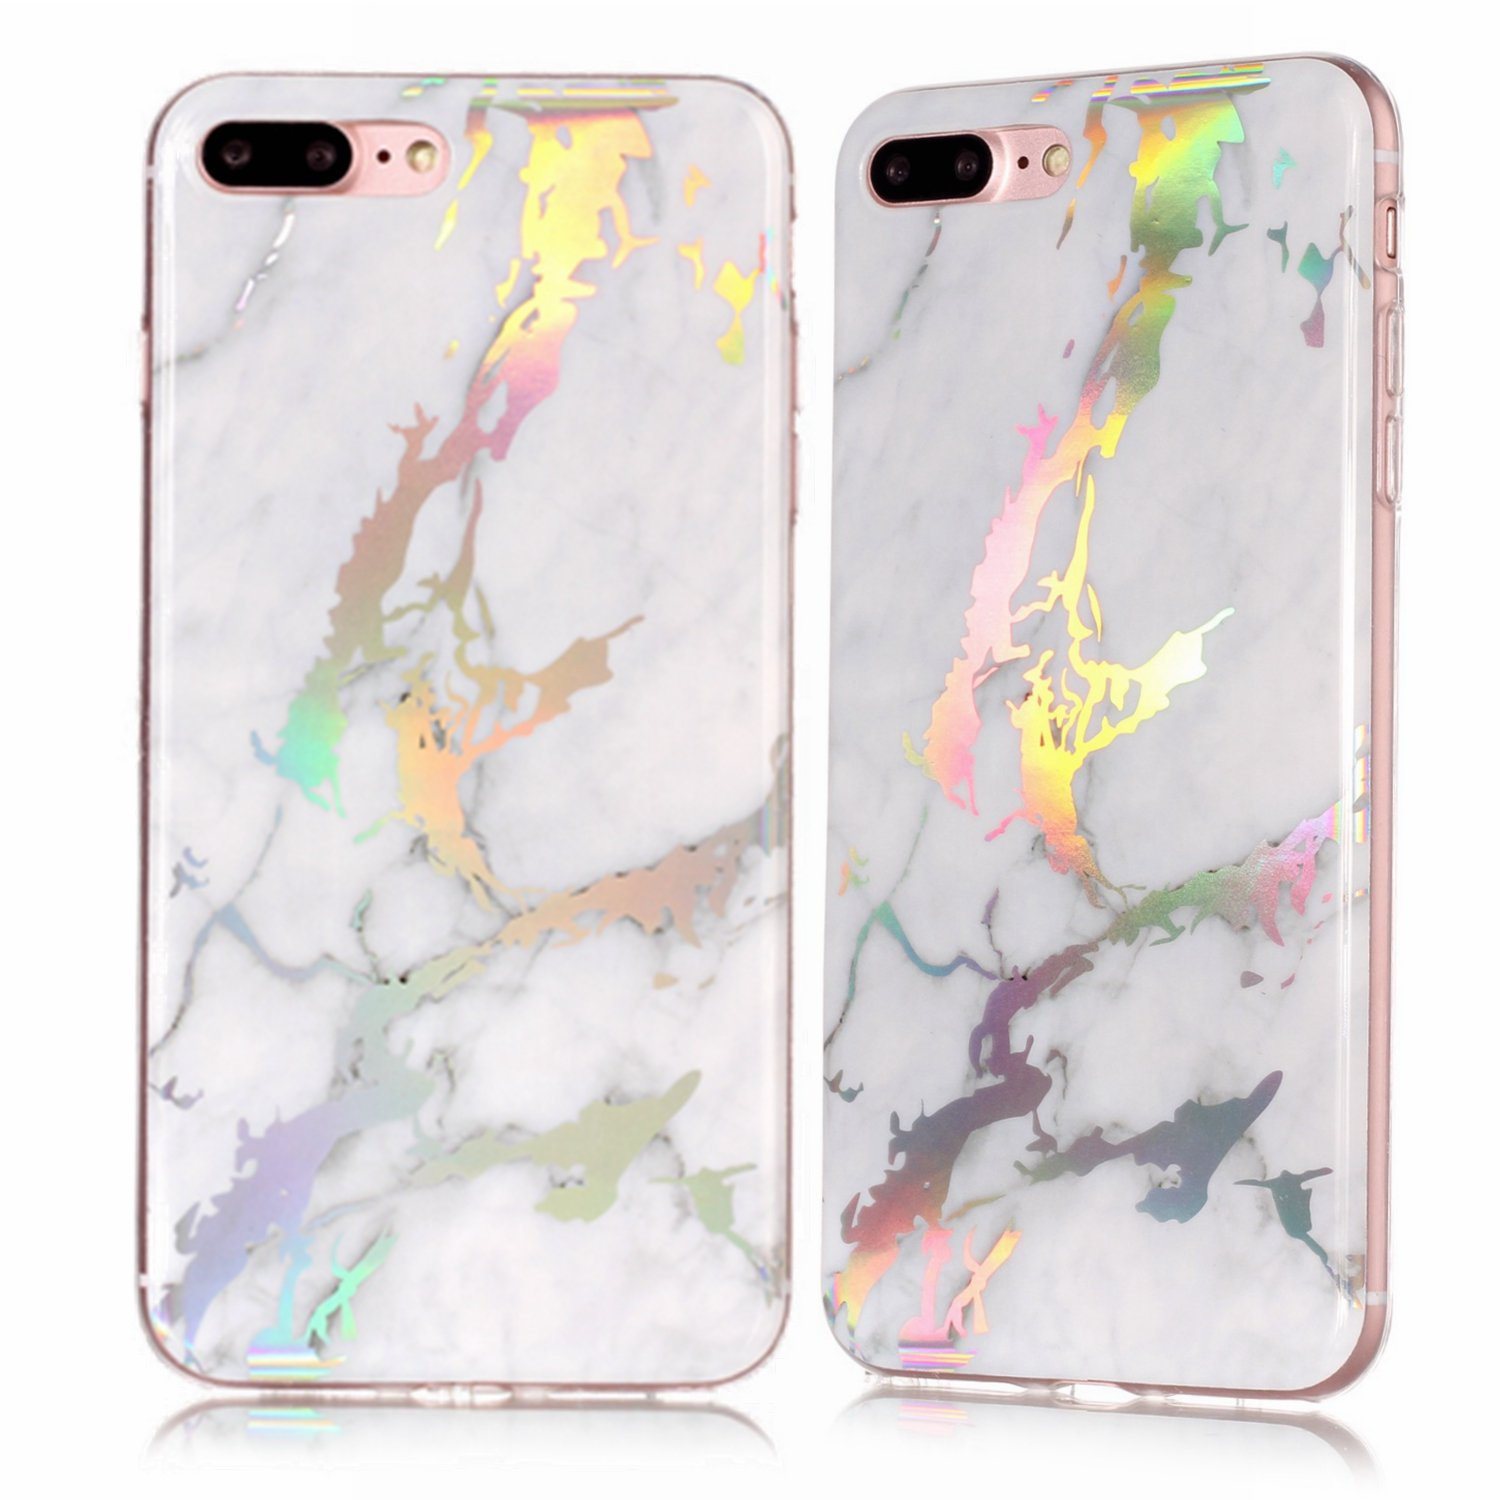 amazon com iphone 6 holographic marble case, iphone 6s white holoiphone 6 holographic marble case, iphone 6s white holo marble case, ultra thin sleek tpu silicone rubber phone cover for iphone 6 \u0026 iphone 6s fashion pink